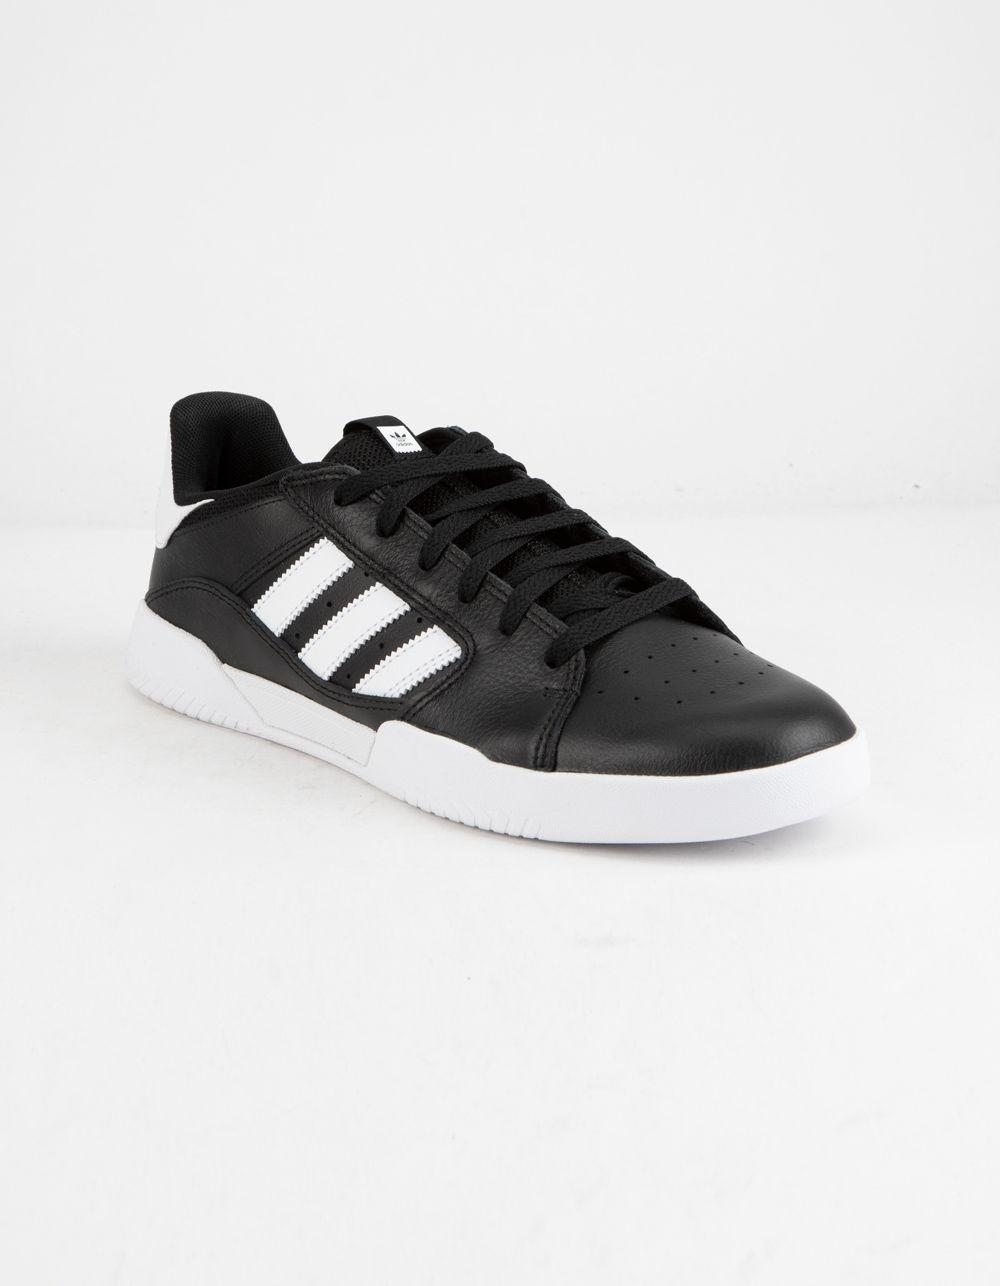 Black Shoes In Vrx Adidas Mens Lyst For Cup Men Low v8nN0wm